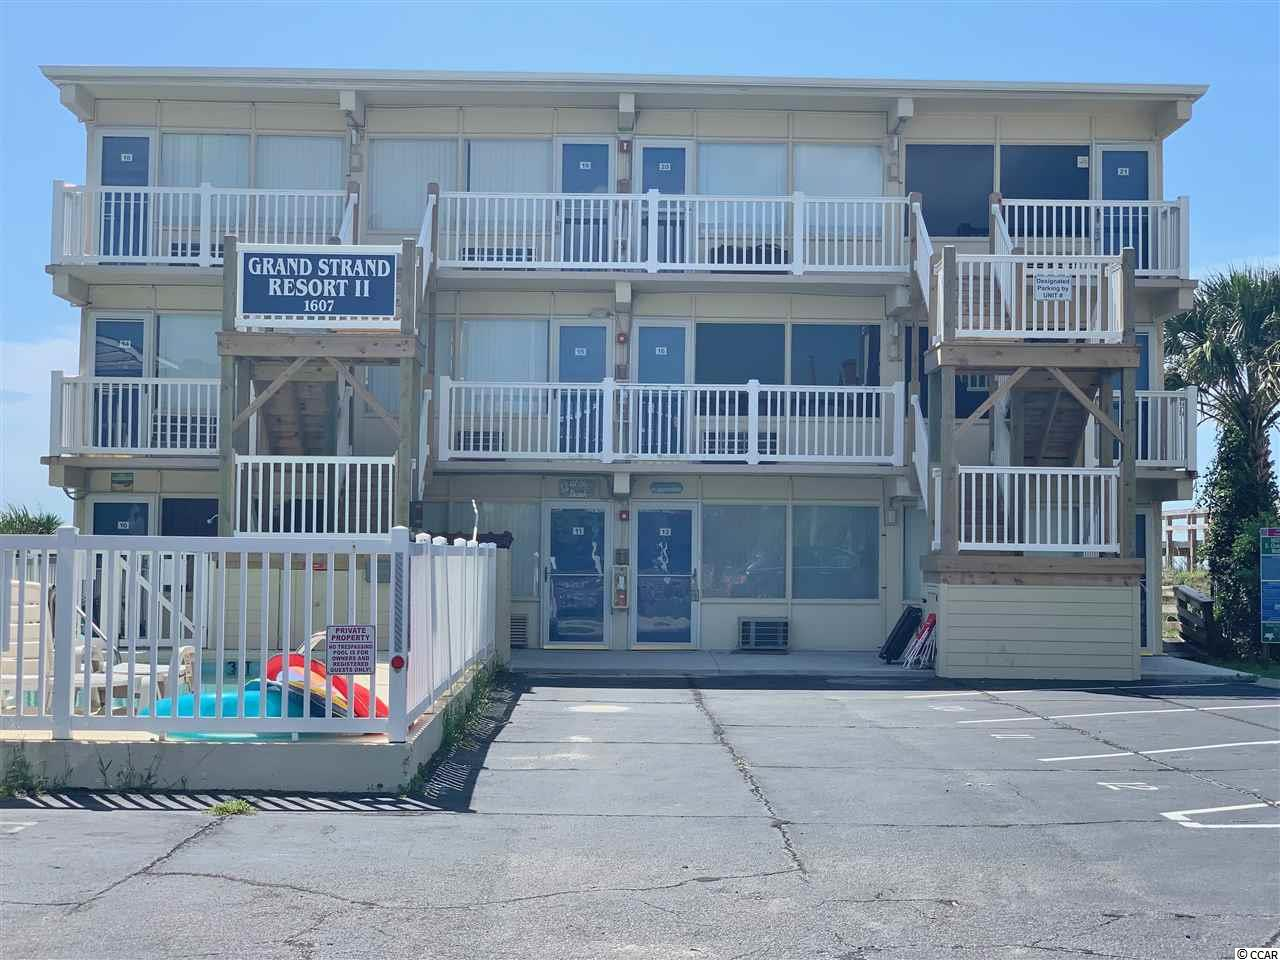 Looking for a deal on the oceanfront? You must see this direct oceanfront unit located in the crescent beach section of North Myrtle Beach. Location, Location, Location! Close to main street, barefoot landing, restaurants, shopping, and all the beach has to offer. Perfect opportunity for an investor or weekend getaway, schedule your showing today!